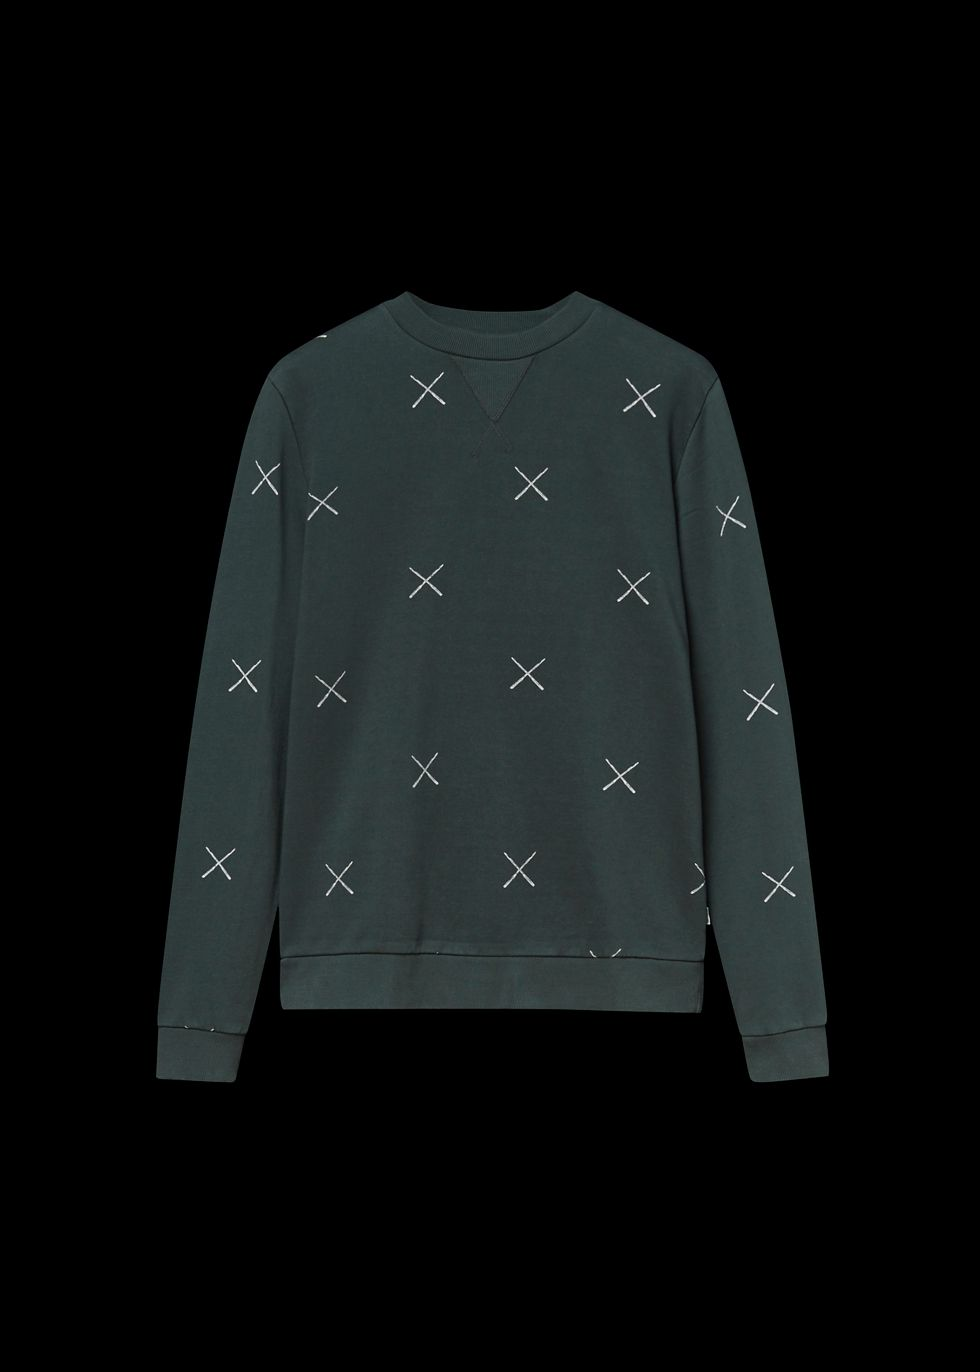 Allover Sweater | The Sting